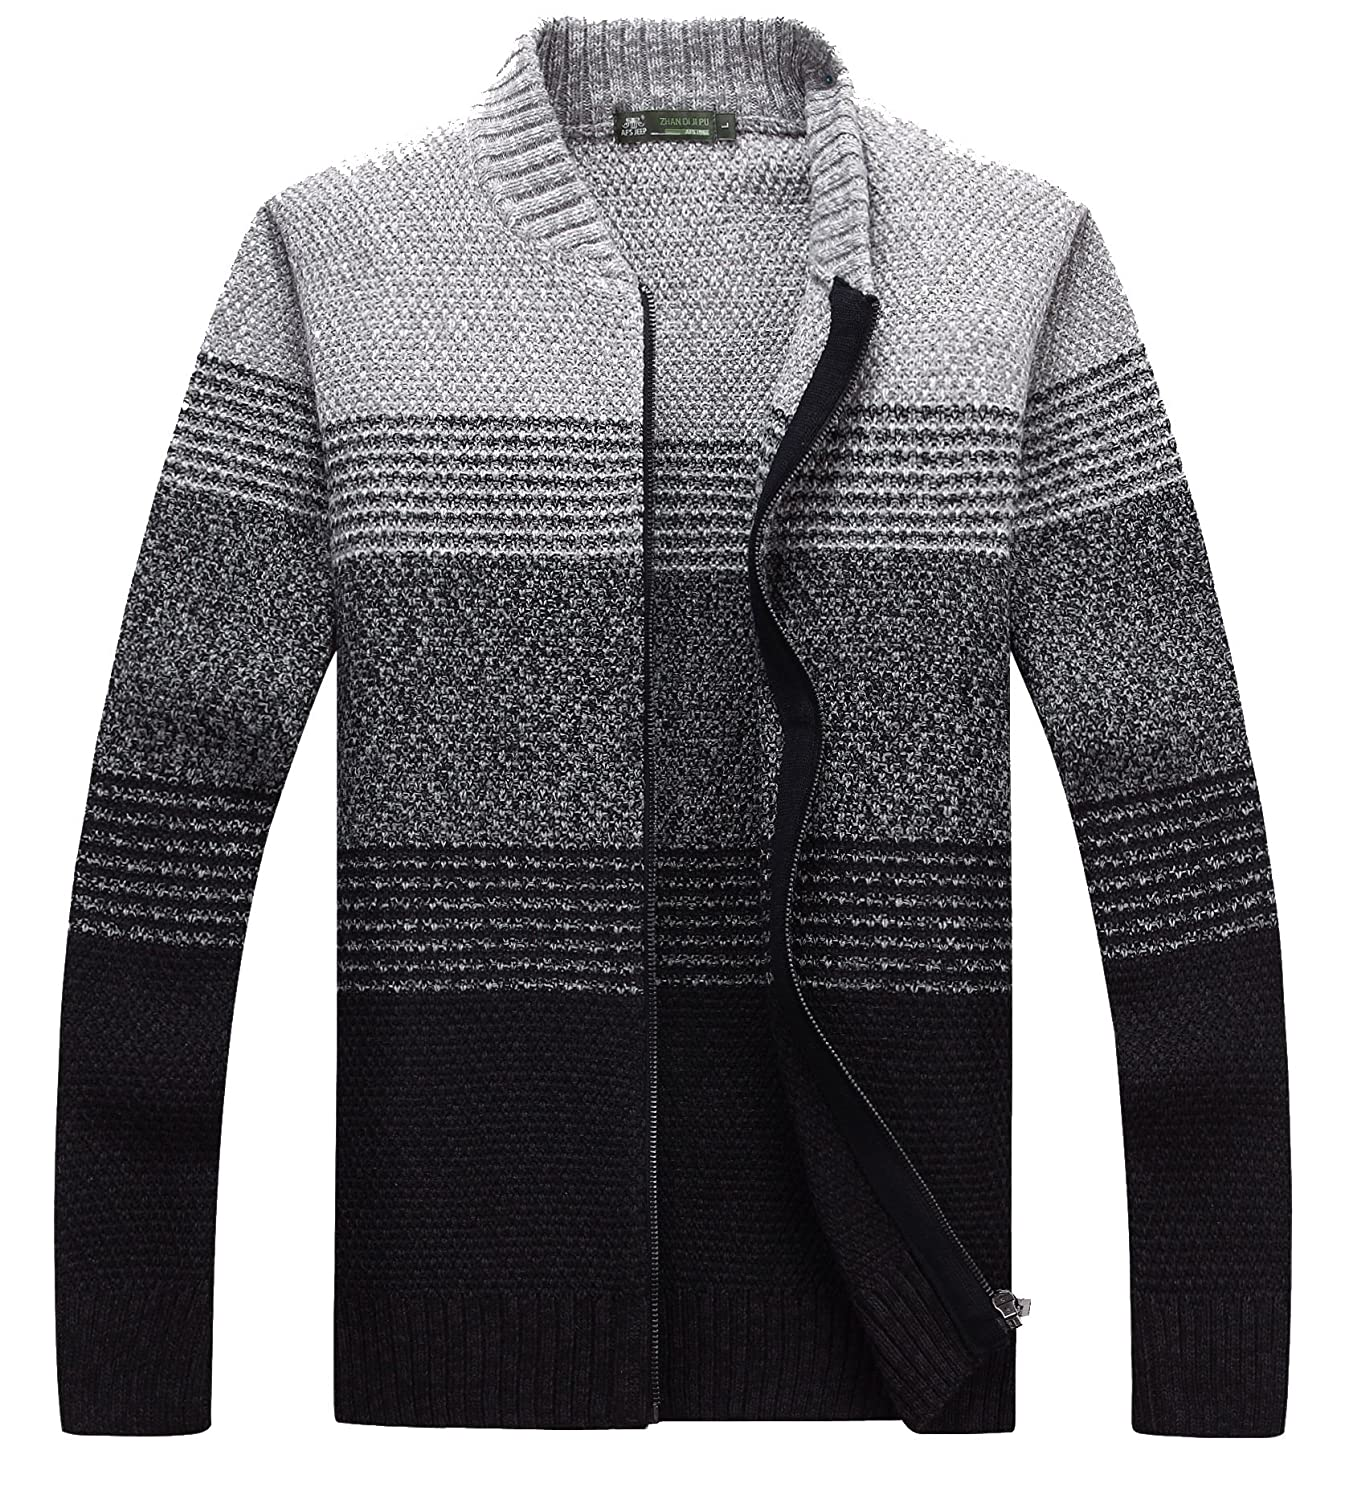 Size M-7XL fanhang Mens Long Sleeve Slim Fit Zip Up Color Gradient Cardigan Sweater Knitwear